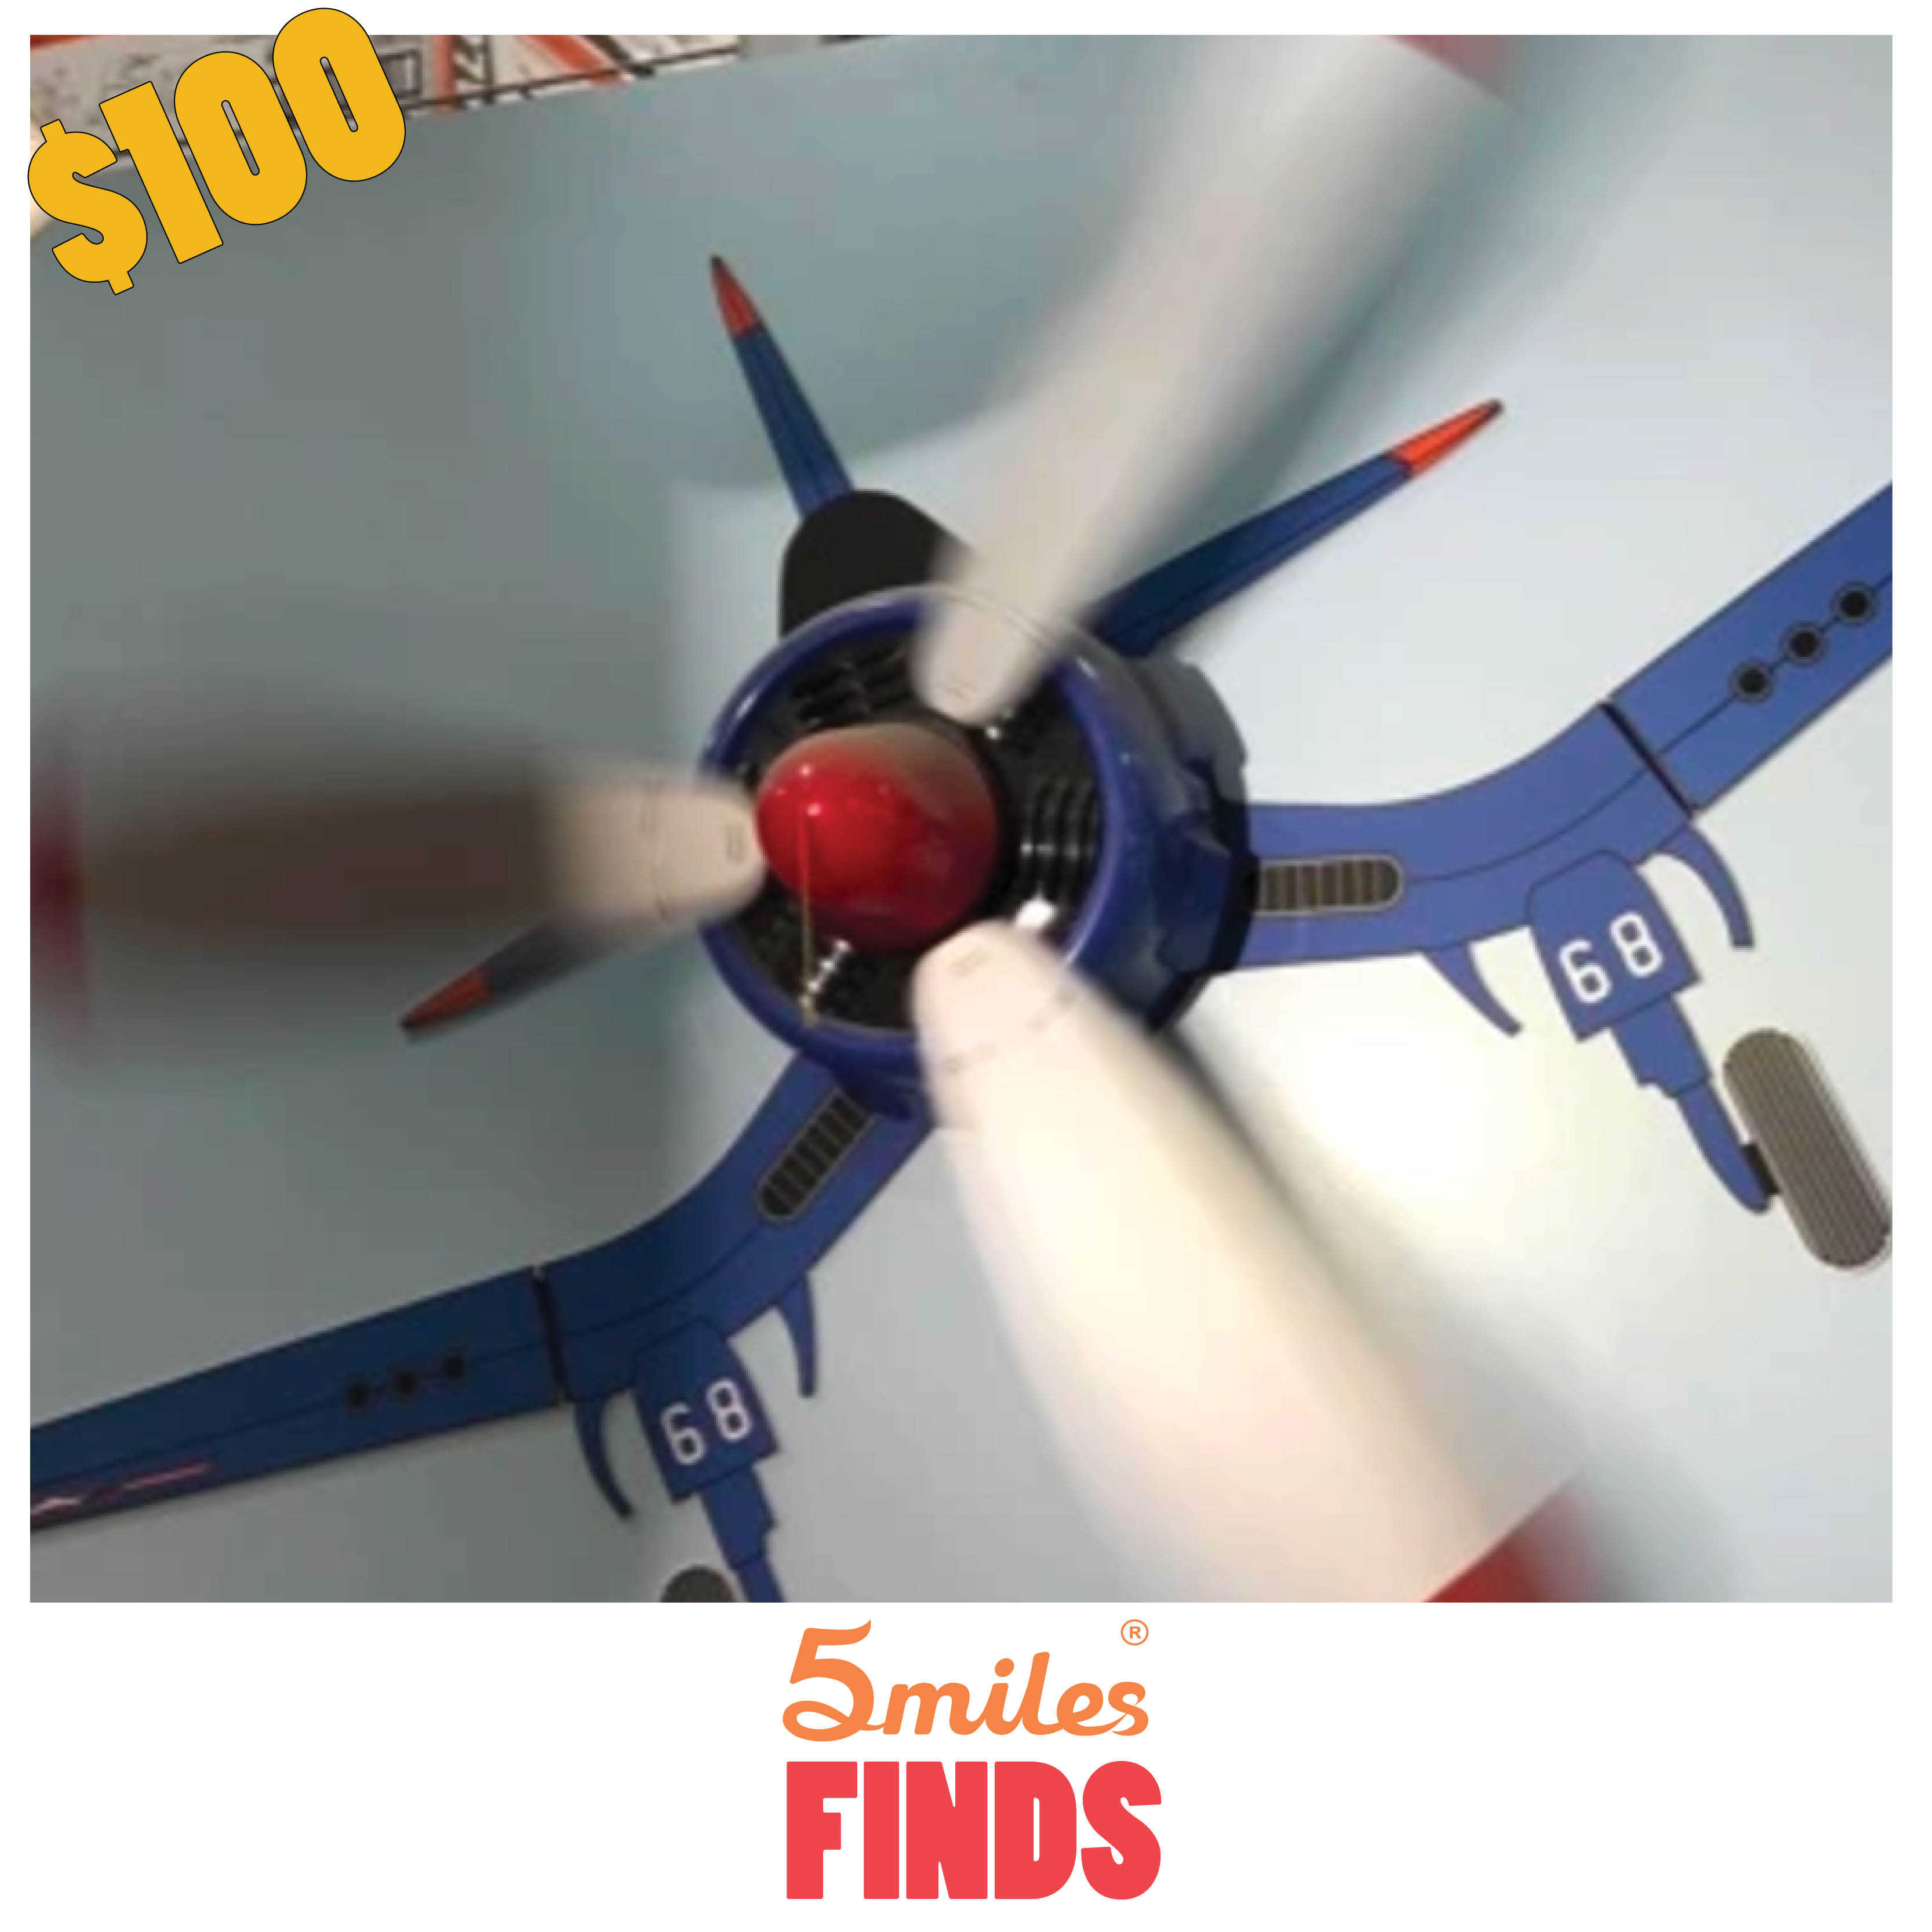 5miles Finds Kids Airplane Ceiling Fan 5miles